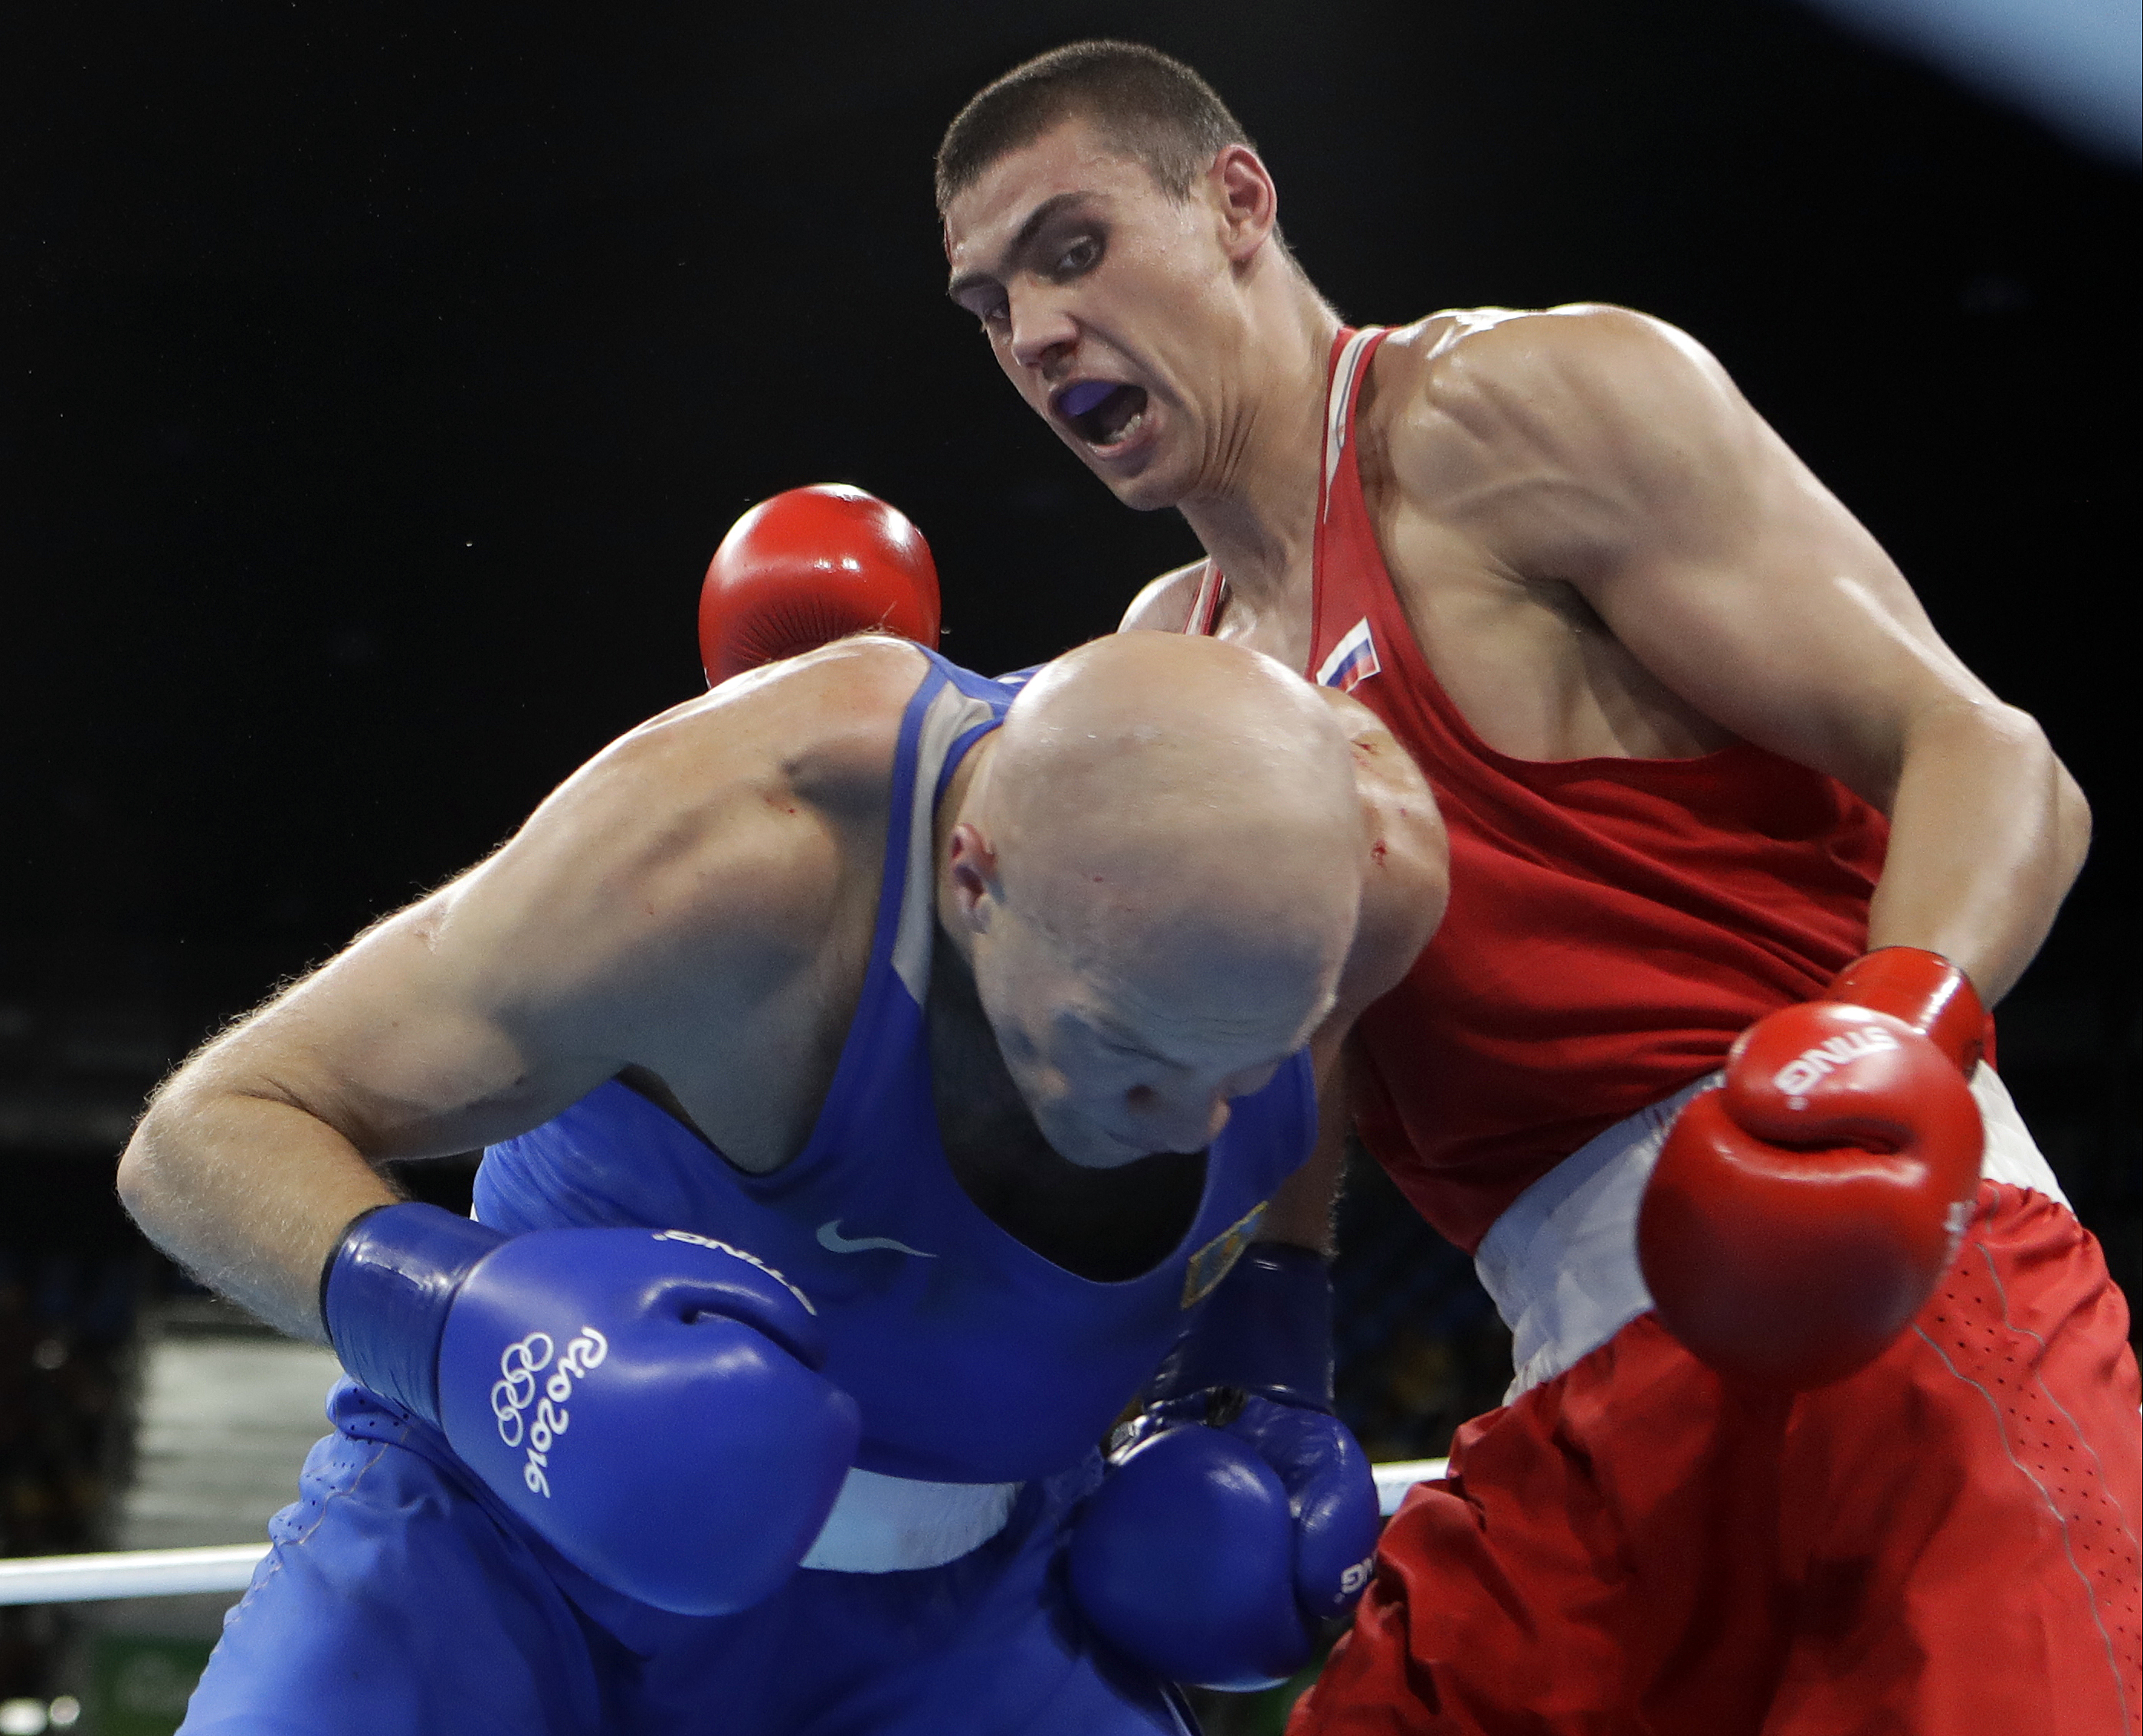 Russia's Evgeny Tishchenko, right, fights Kazakhstan's Vassiliy Levit during a men's heavyweight 91-kg final boxing match at the 2016 Summer Olympics in Rio de Janeiro, Brazil, Monday, Aug. 15, 2016. (AP Photo/Frank Franklin II)